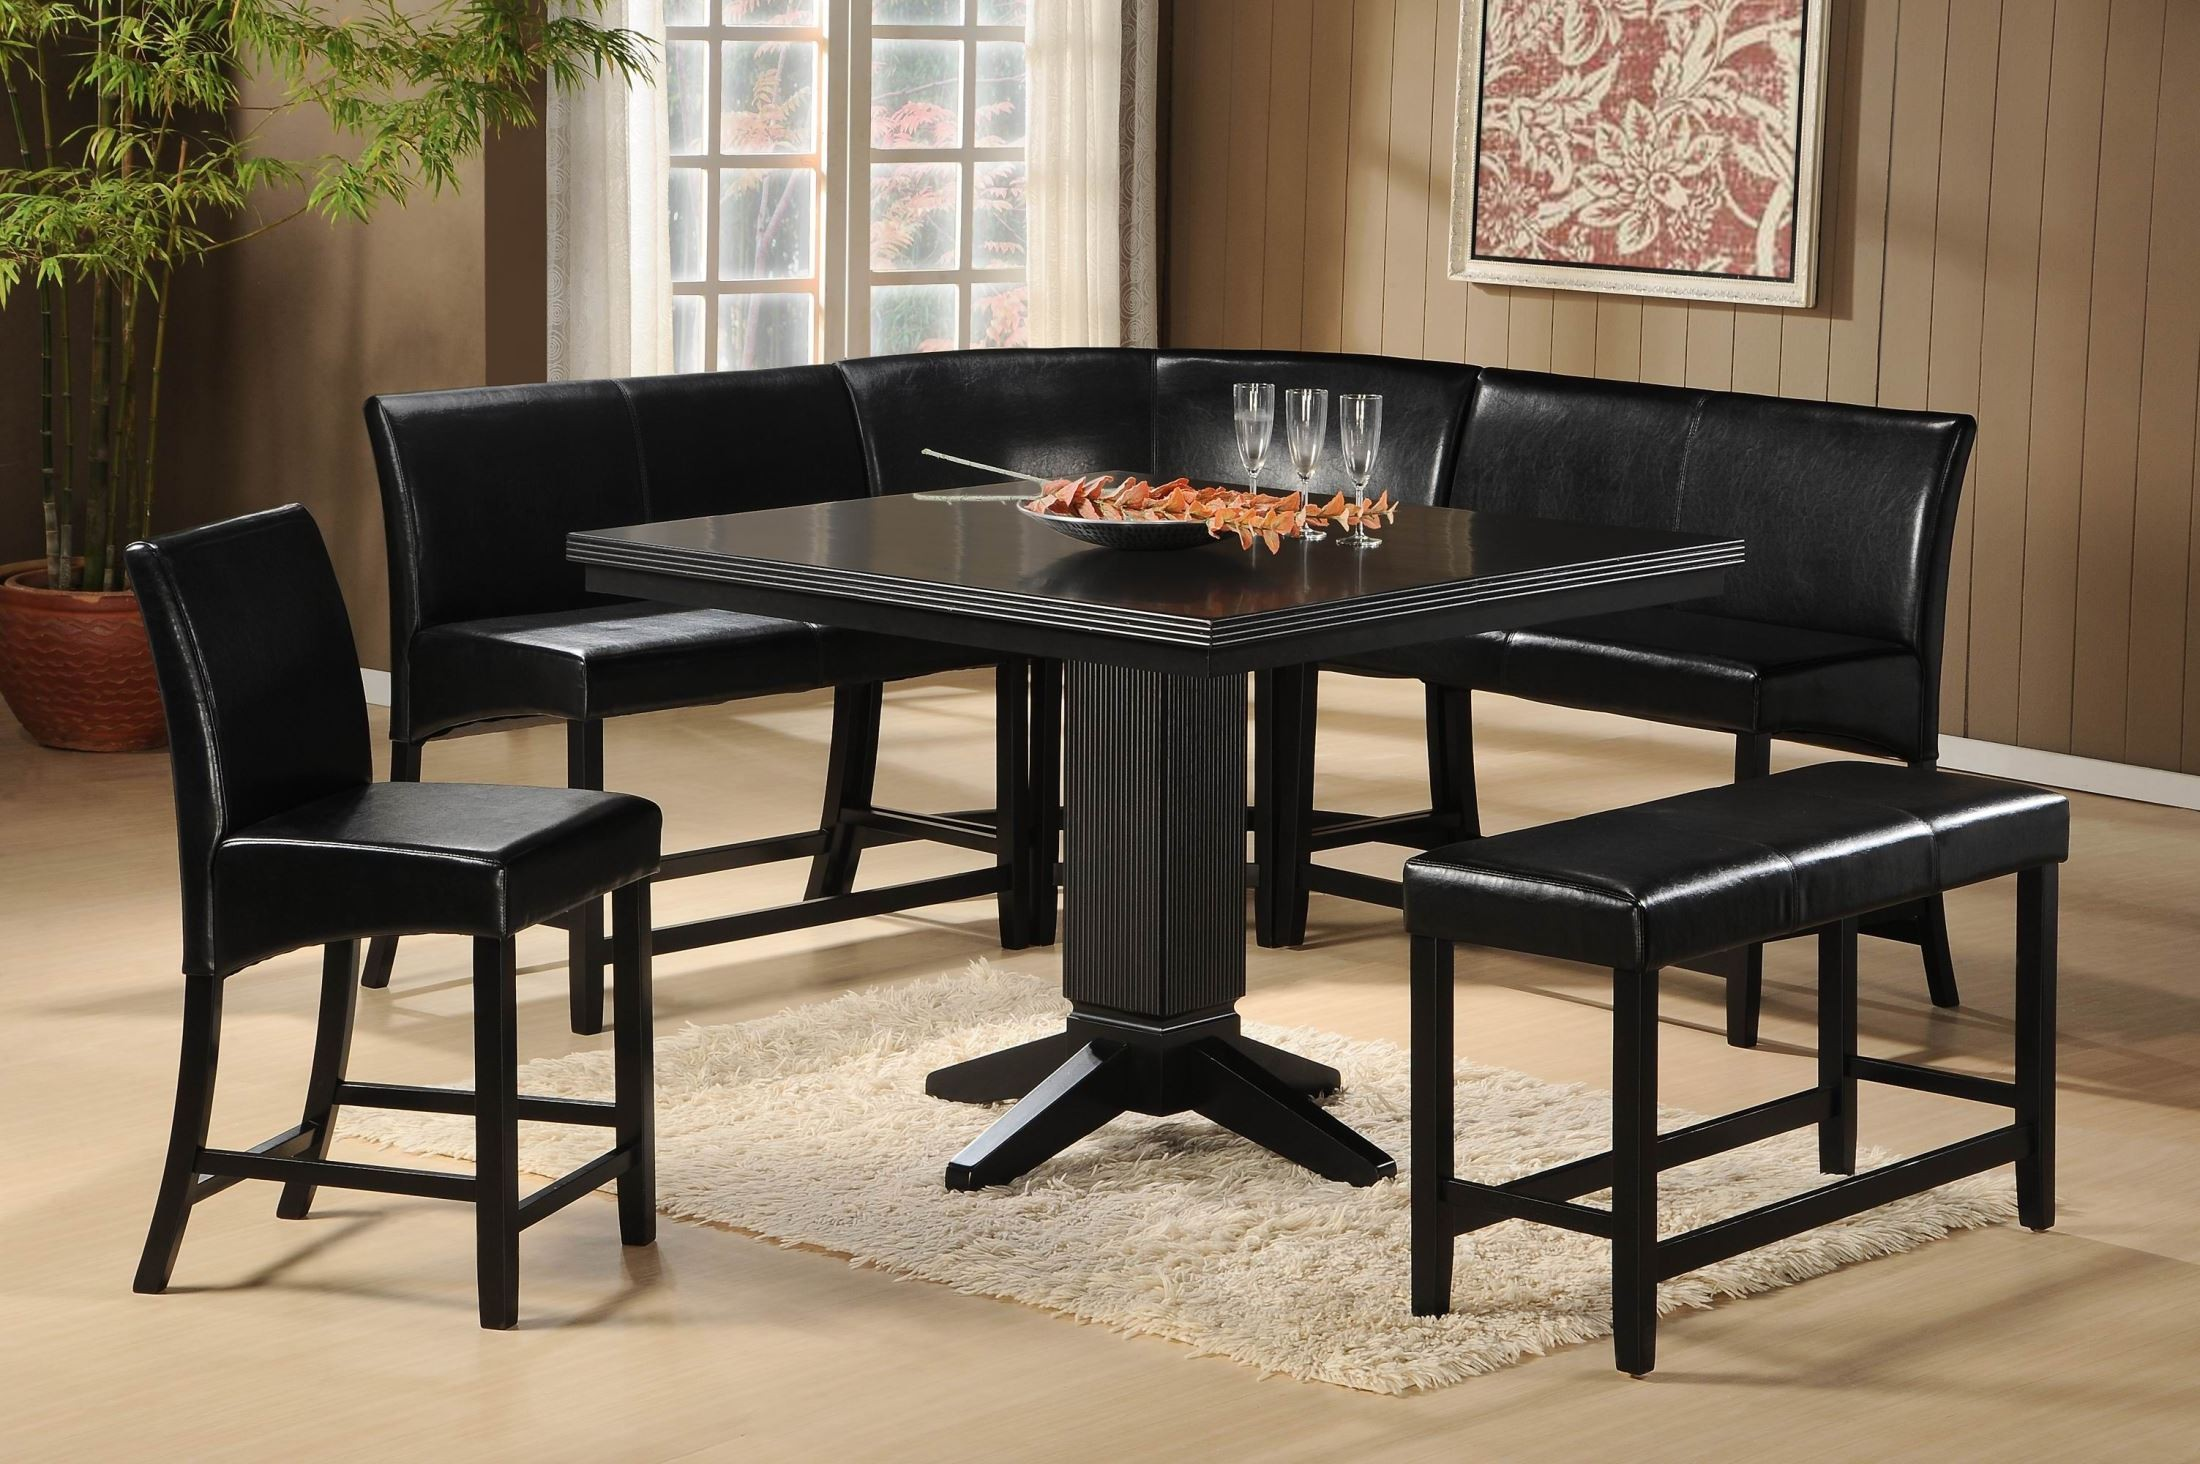 Papario nook Counter Height Dining Table from Homelegance  :  5351 36 and 5351 24ts and 5351 24cr and 5351 24 and 5351 24bh view 2 from colemanfurniture.com size 2200 x 1464 jpeg 567kB